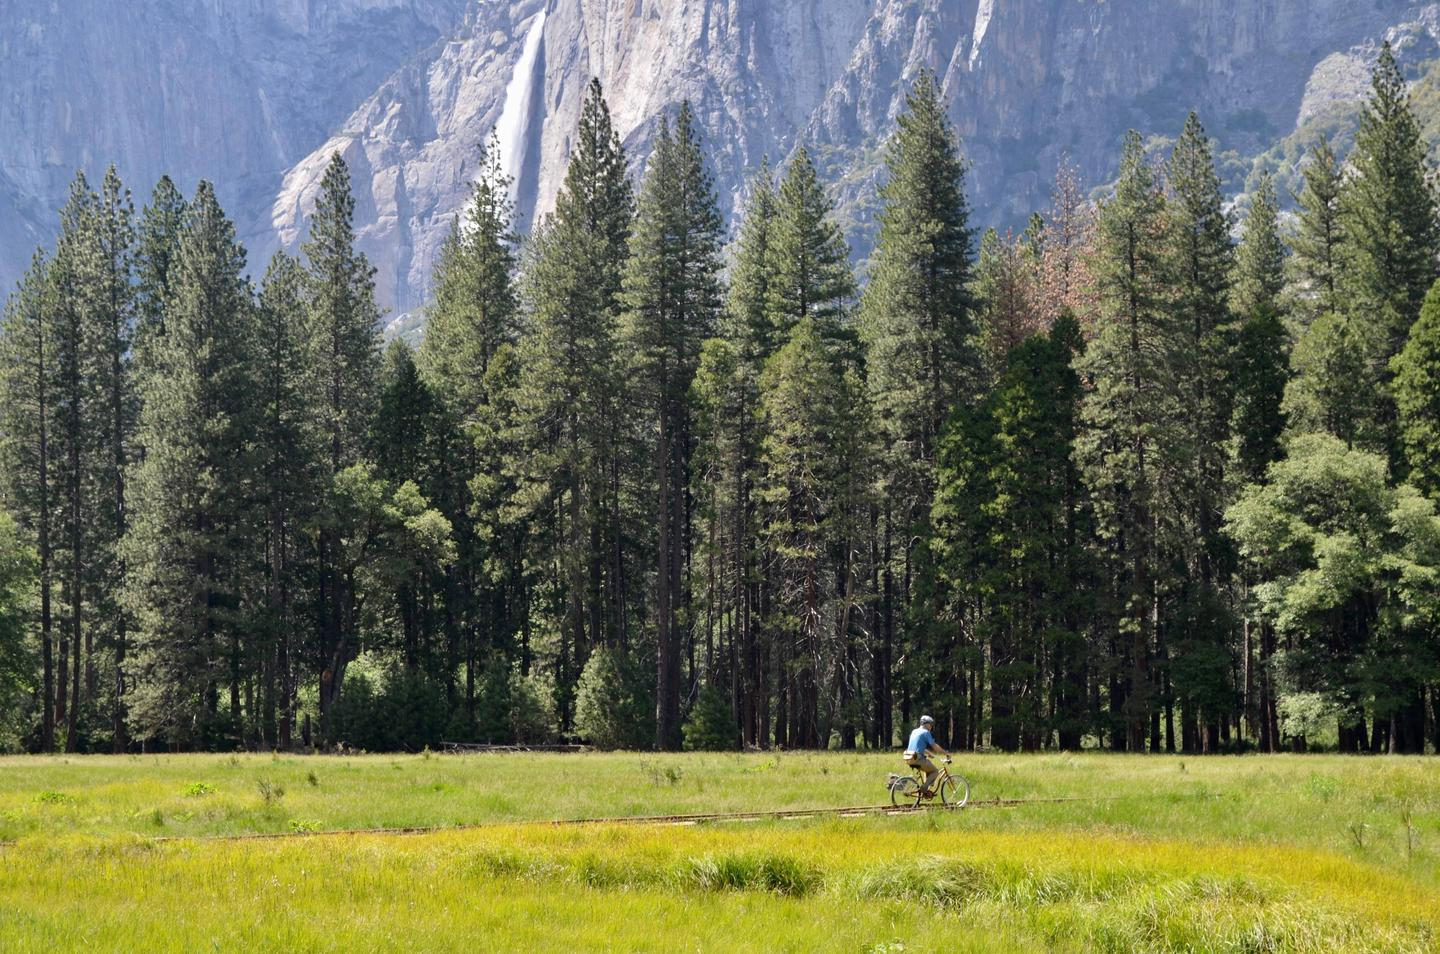 Bicyclist rides along established bike path in Yosemite Valley.